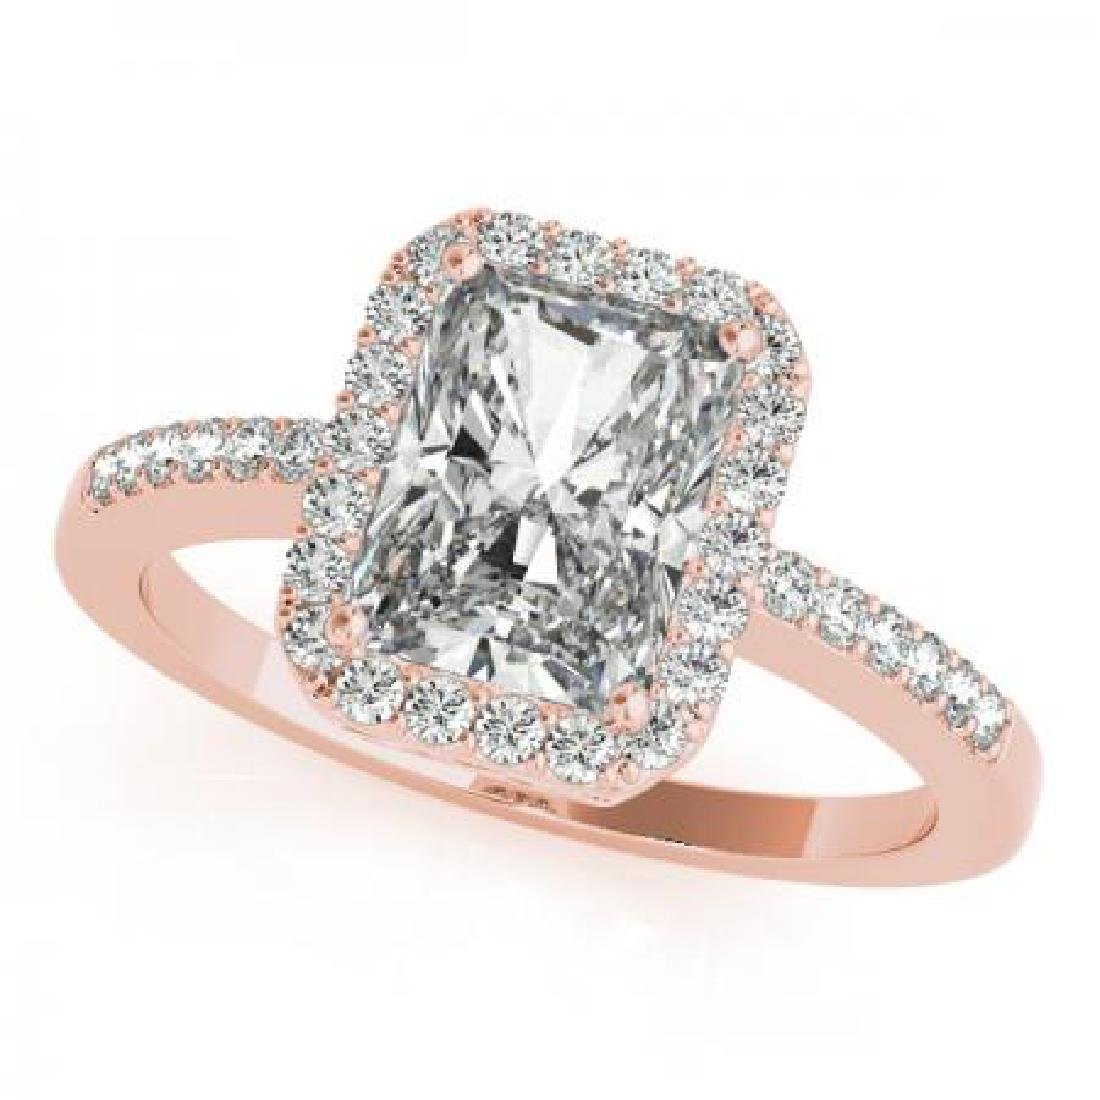 CERTIFIED 18KT ROSE GOLD 1.00 CT G-H/VS-SI1 DIAMOND HAL